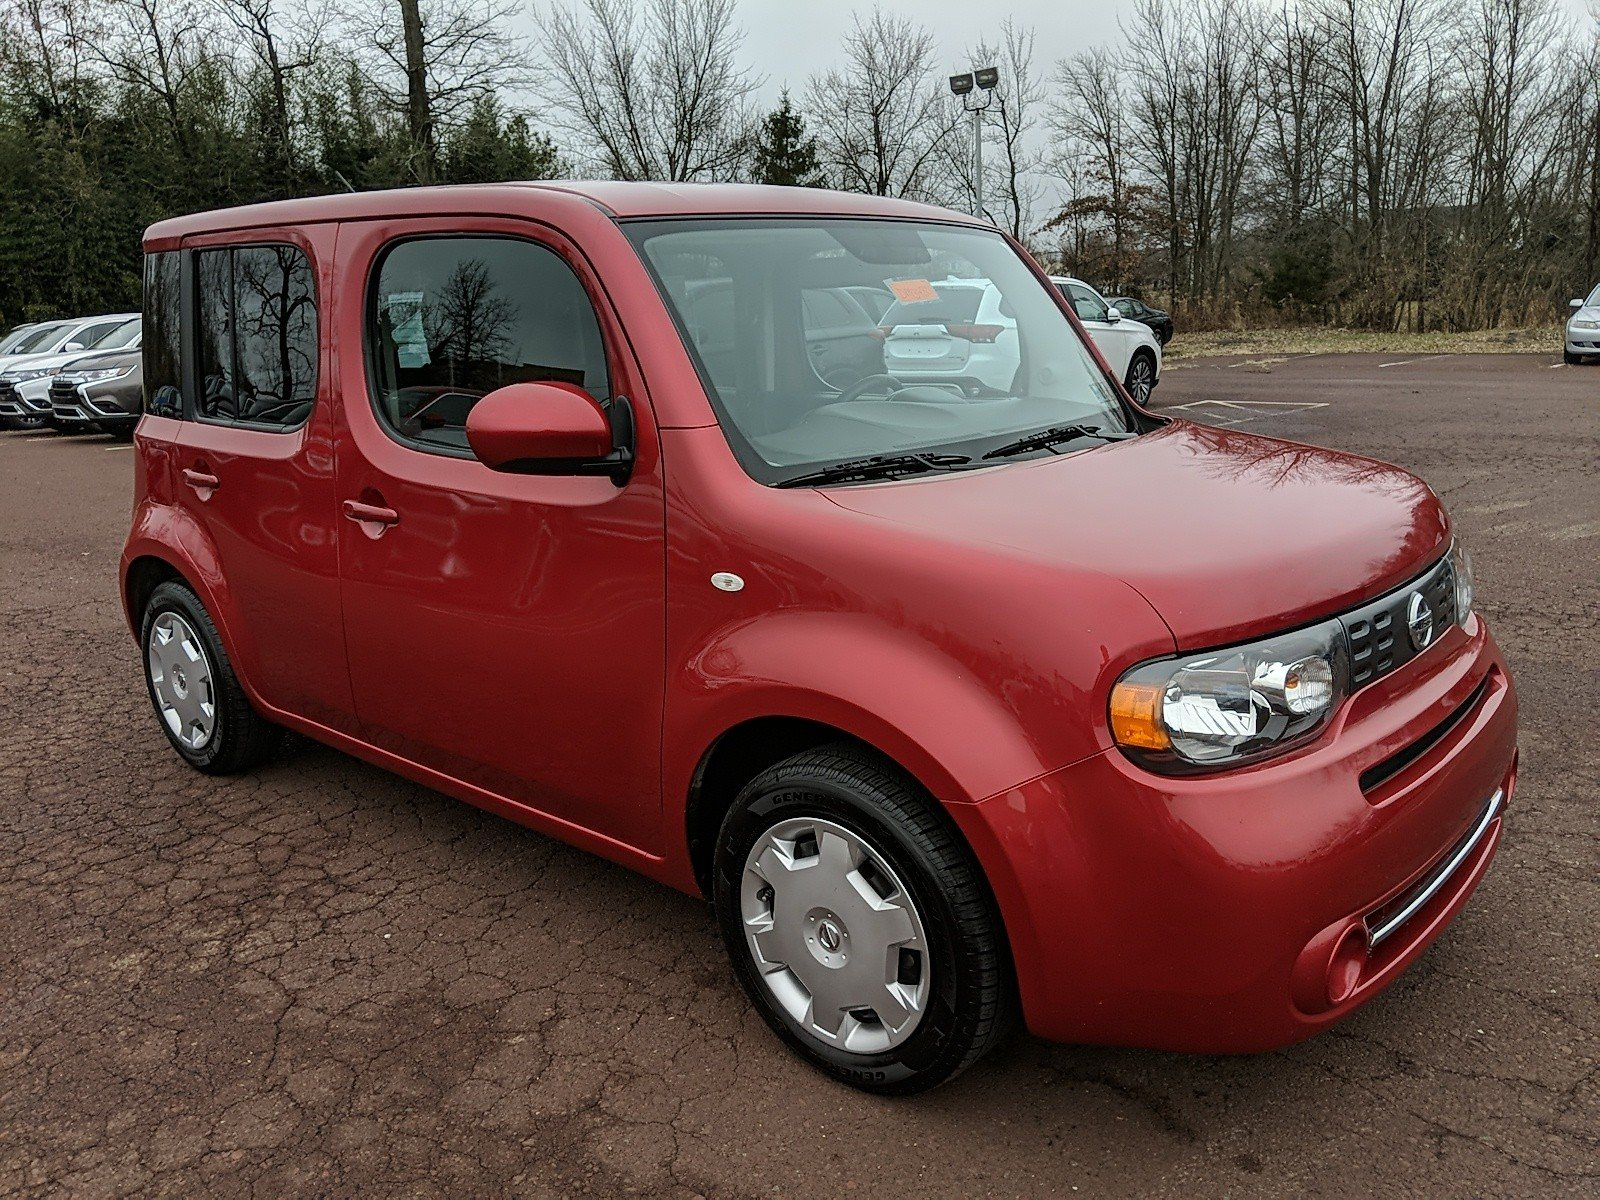 Cars for Sale Near Quakertown Pa Awesome Cars for Sale Under $10 000 In Quakertown Pa Autotrader